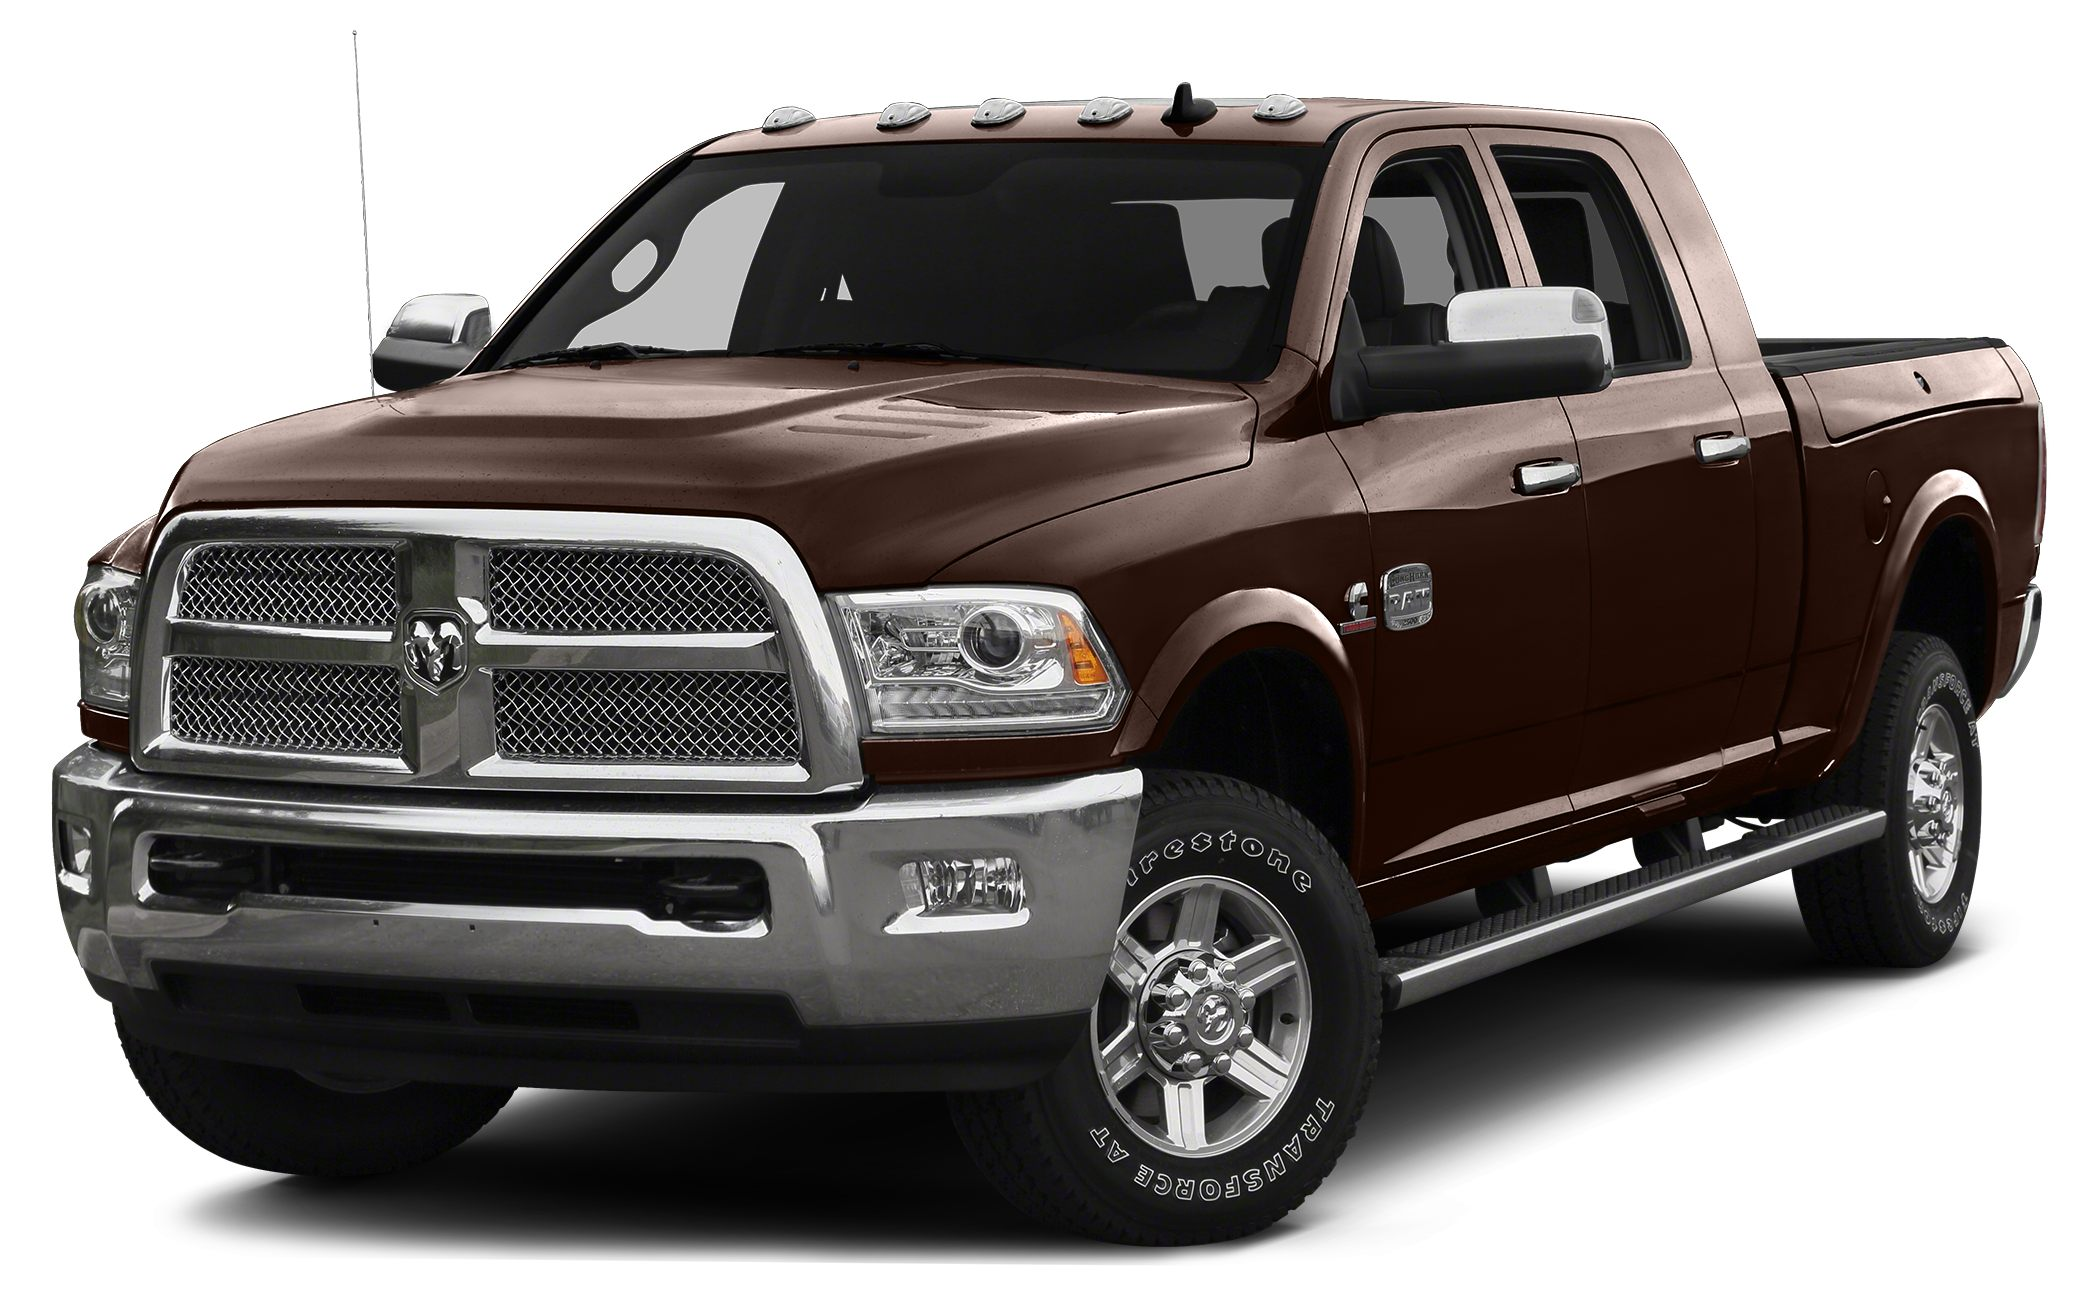 2014 RAM 2500 Longhorn Ram Certified CARFAX 1-Owner Excellent Condition PRICE DROP FROM 47000